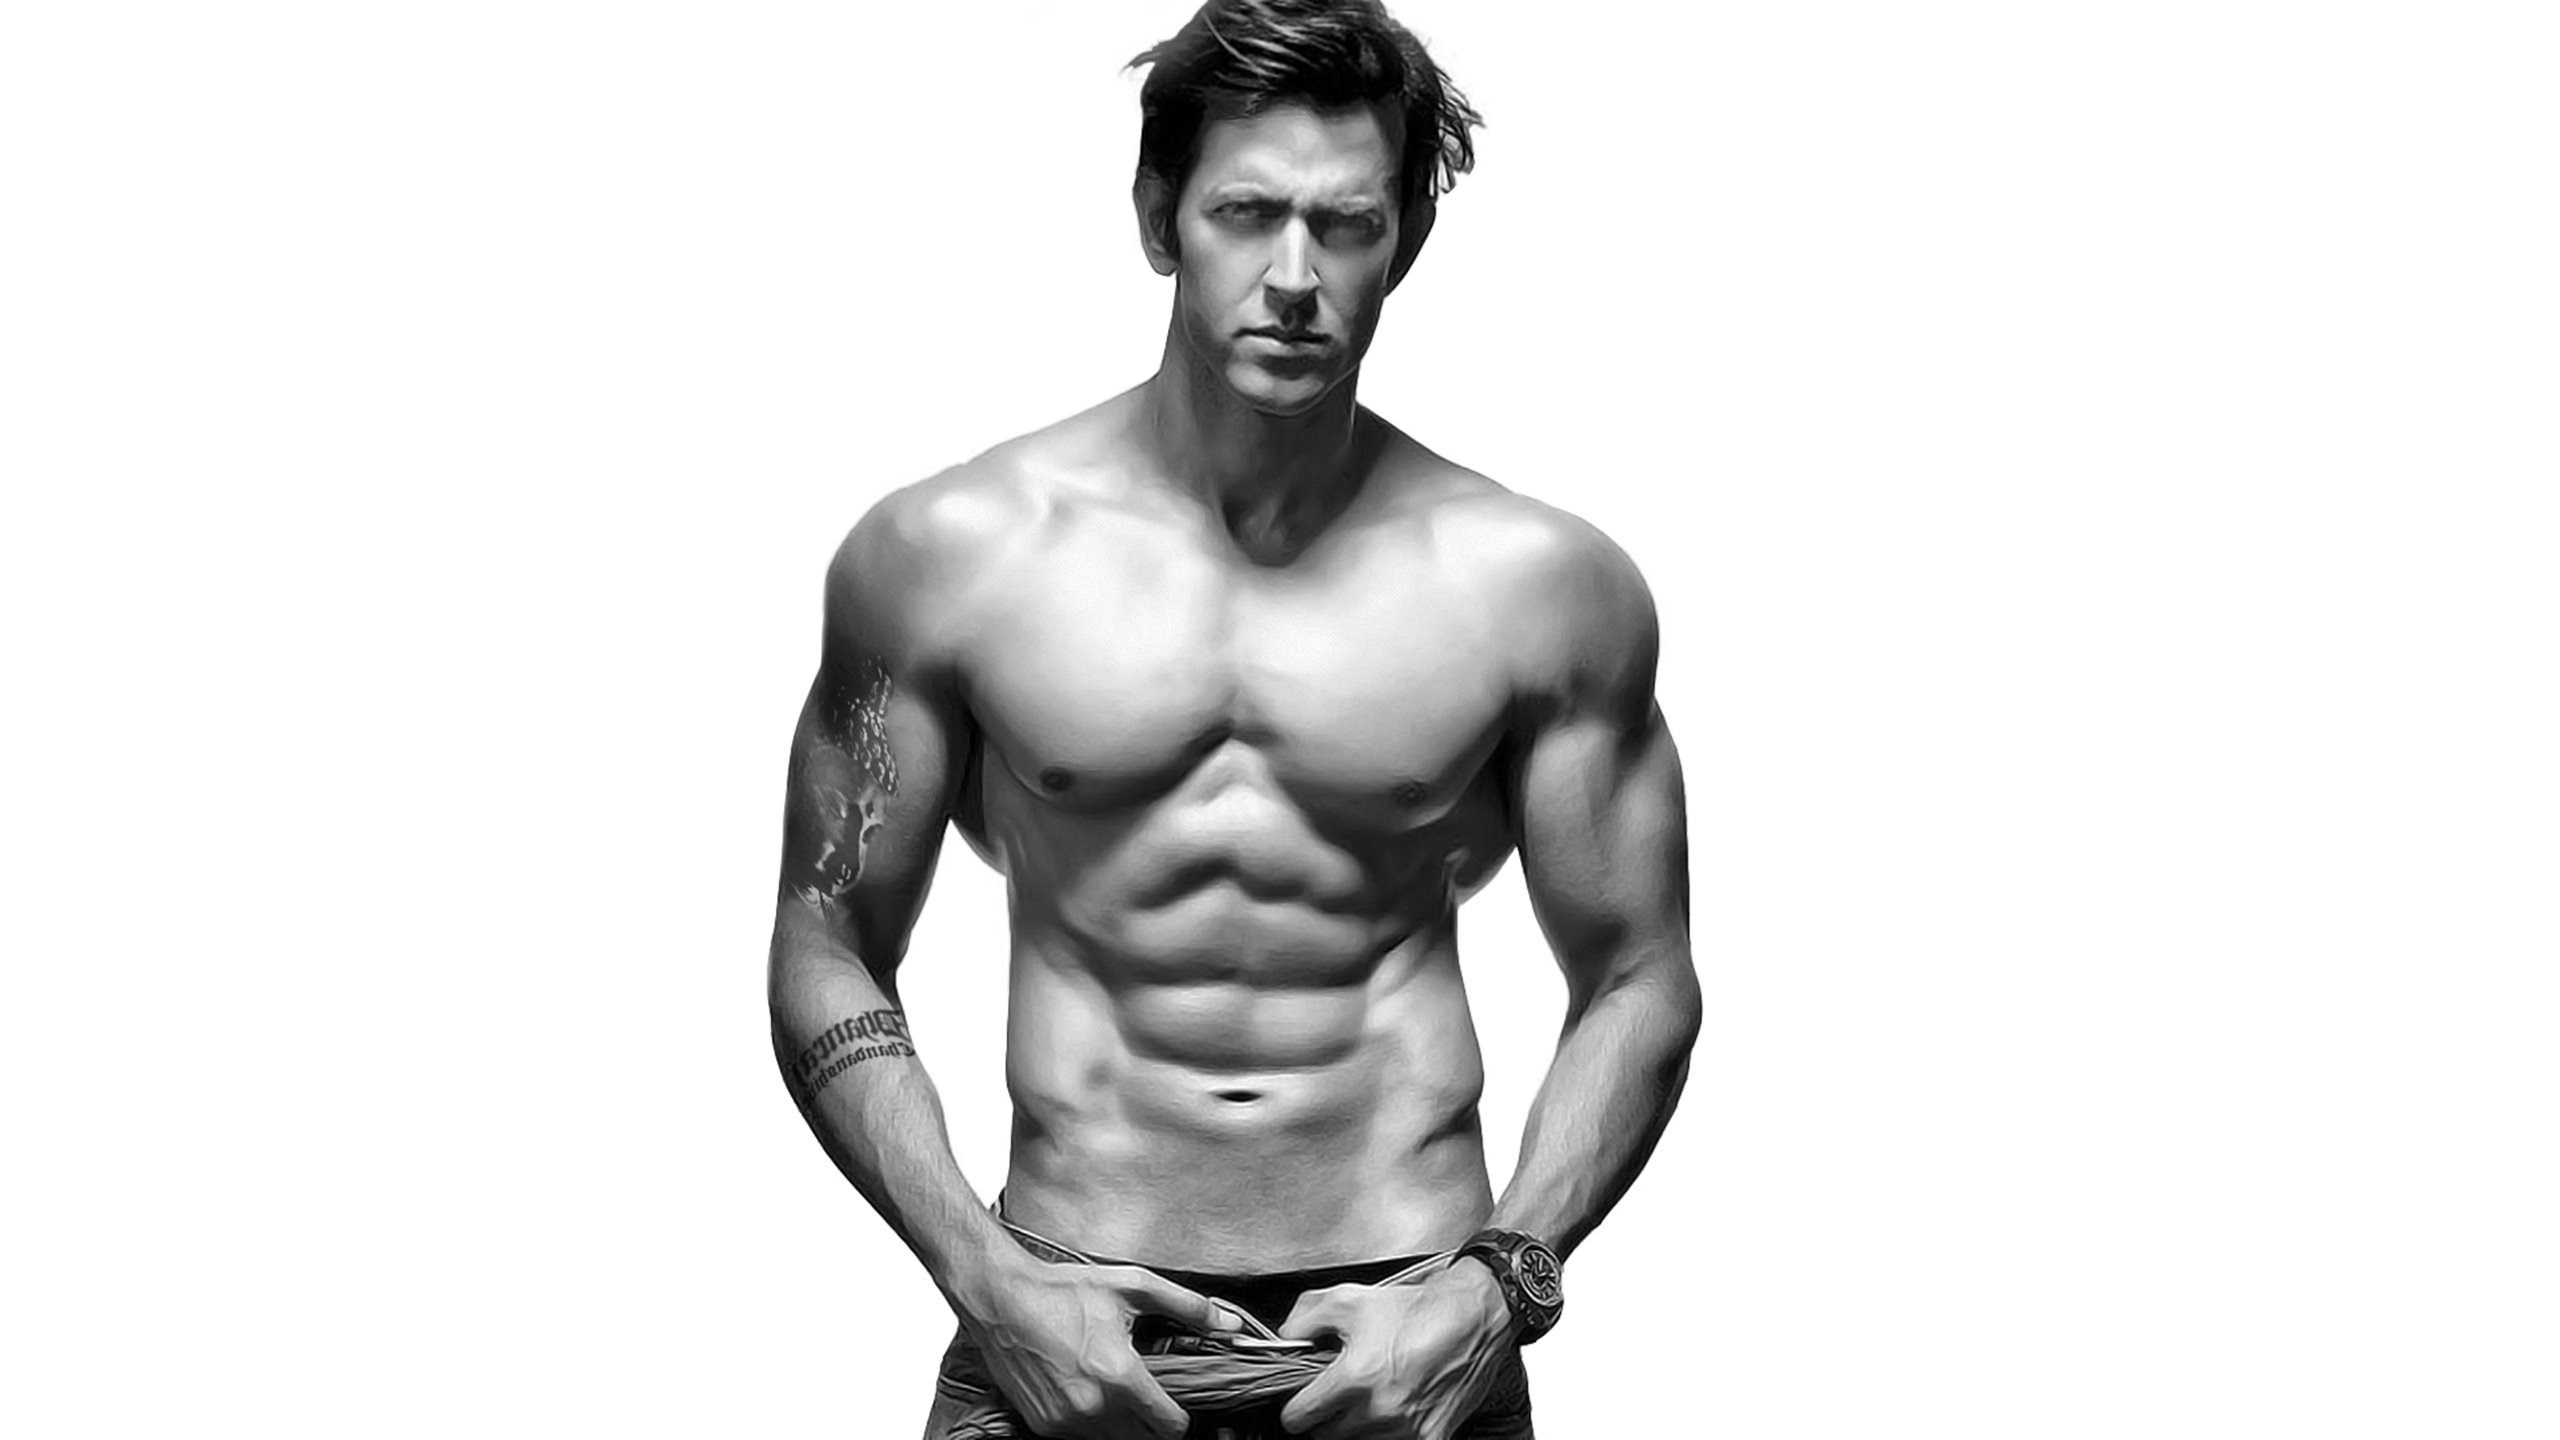 Six Pack Abs Body Of Hrithik Roshan Without Shirt Hd Photo Desktop